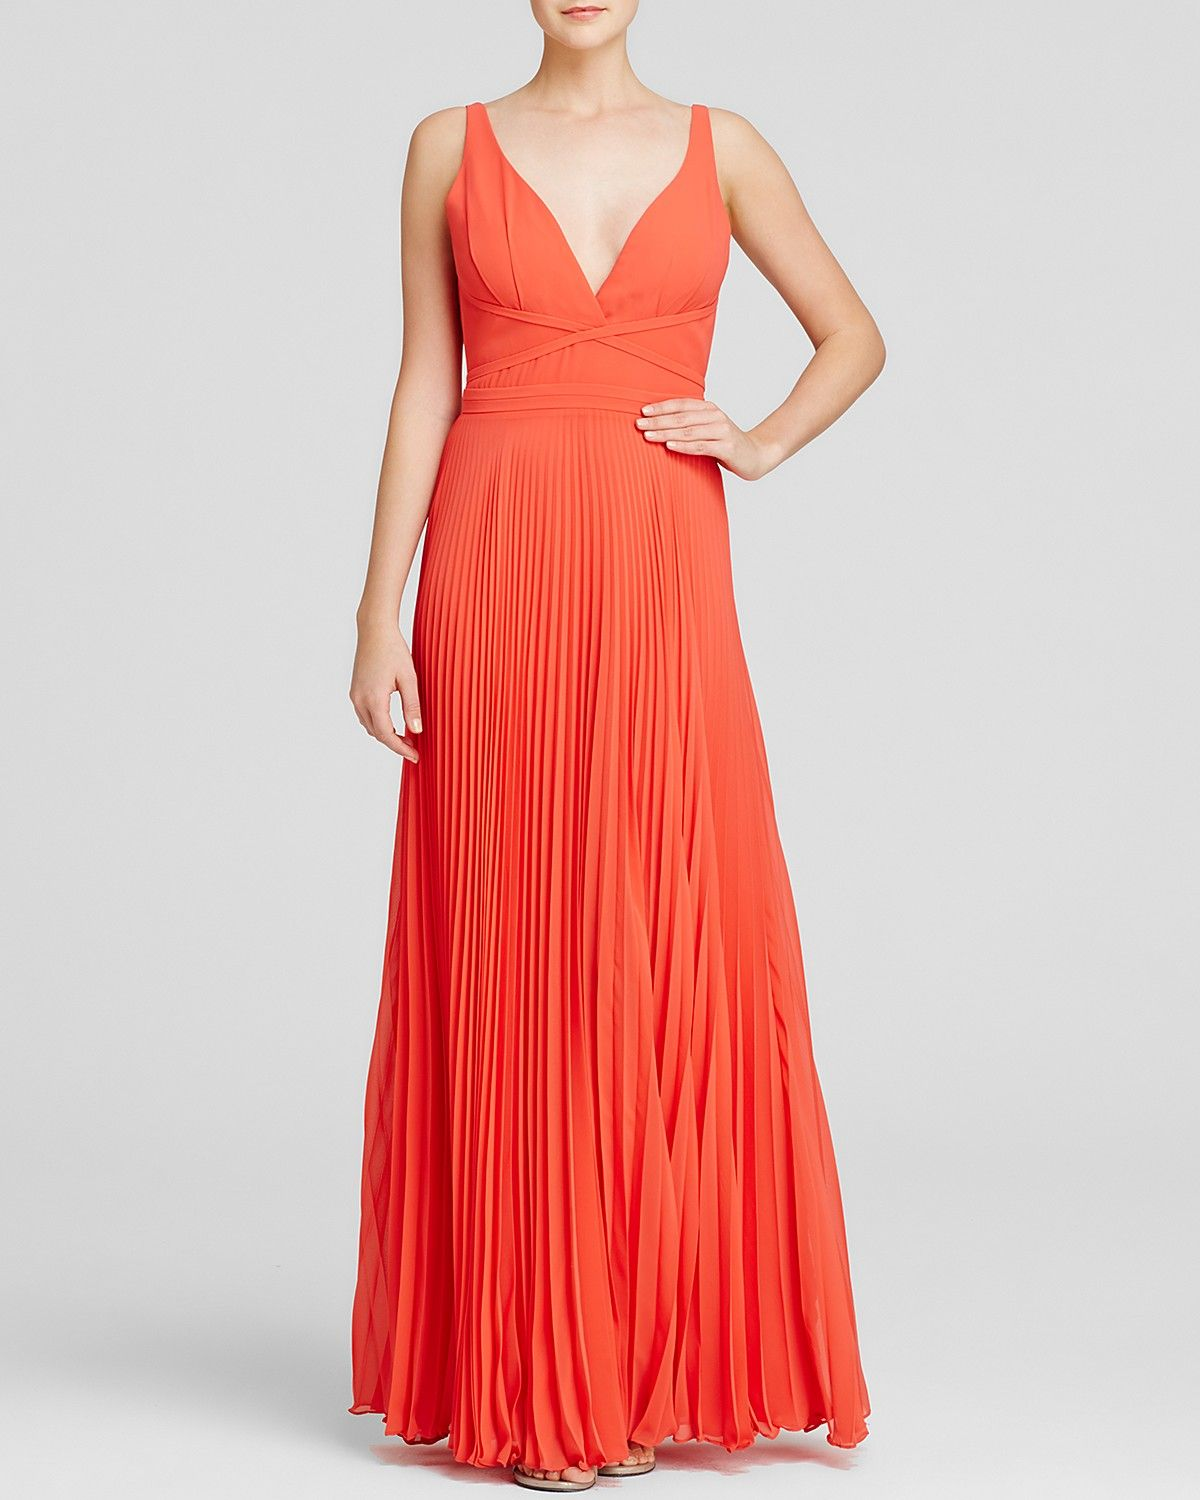 5a2b3ce57 Laundry by Shelli Segal Gown: Sleeveless Deep V-Neck with Pleated Skirt. |  Just got this gorgeous gown from Bloomingdale's for a black-tie summer  wedding ...